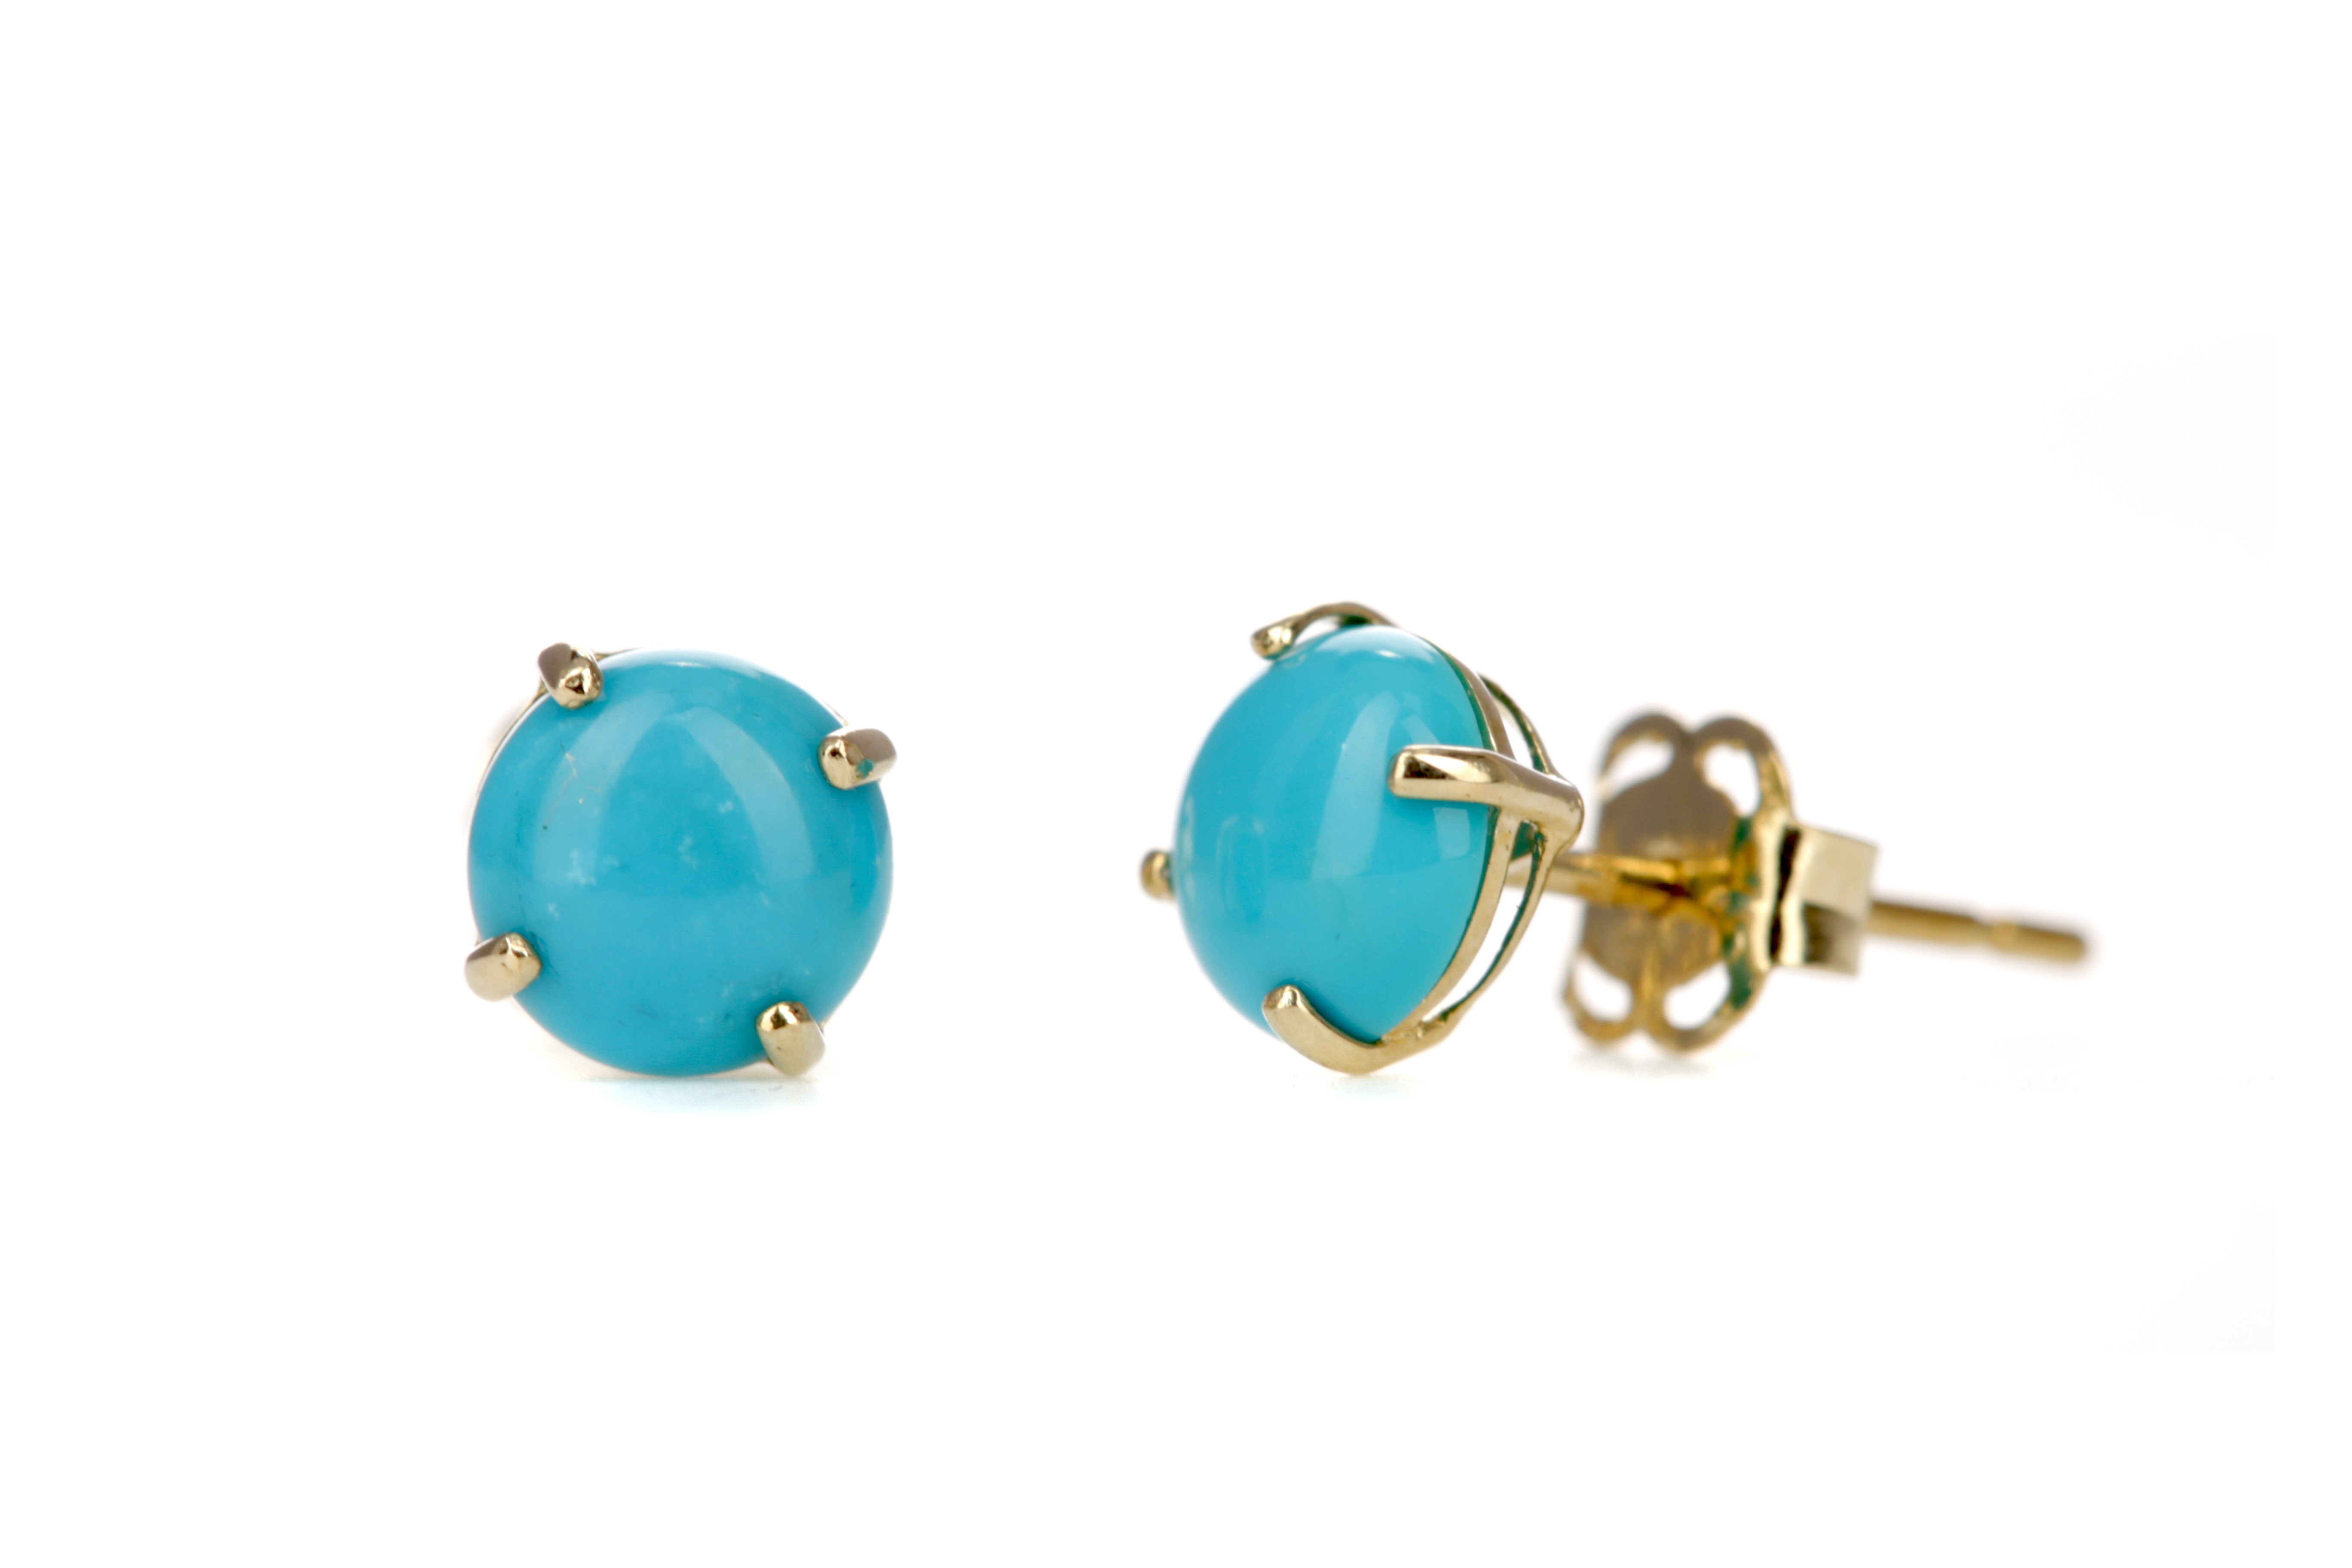 A PAIR OF TURQUOISE STUD EARRINGS